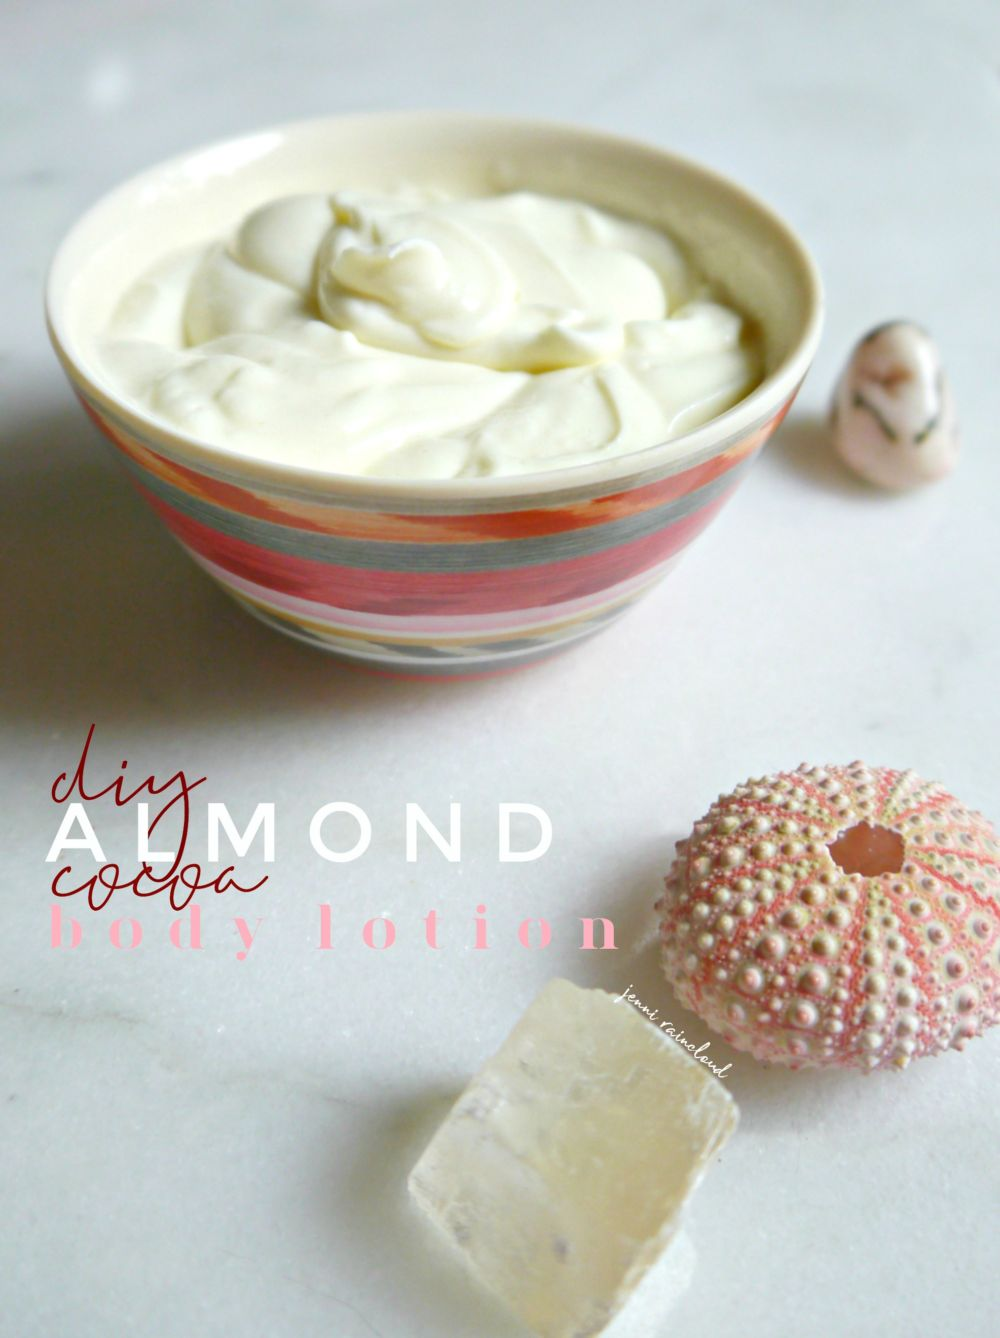 DIY Almond Cocoa Body Lotion